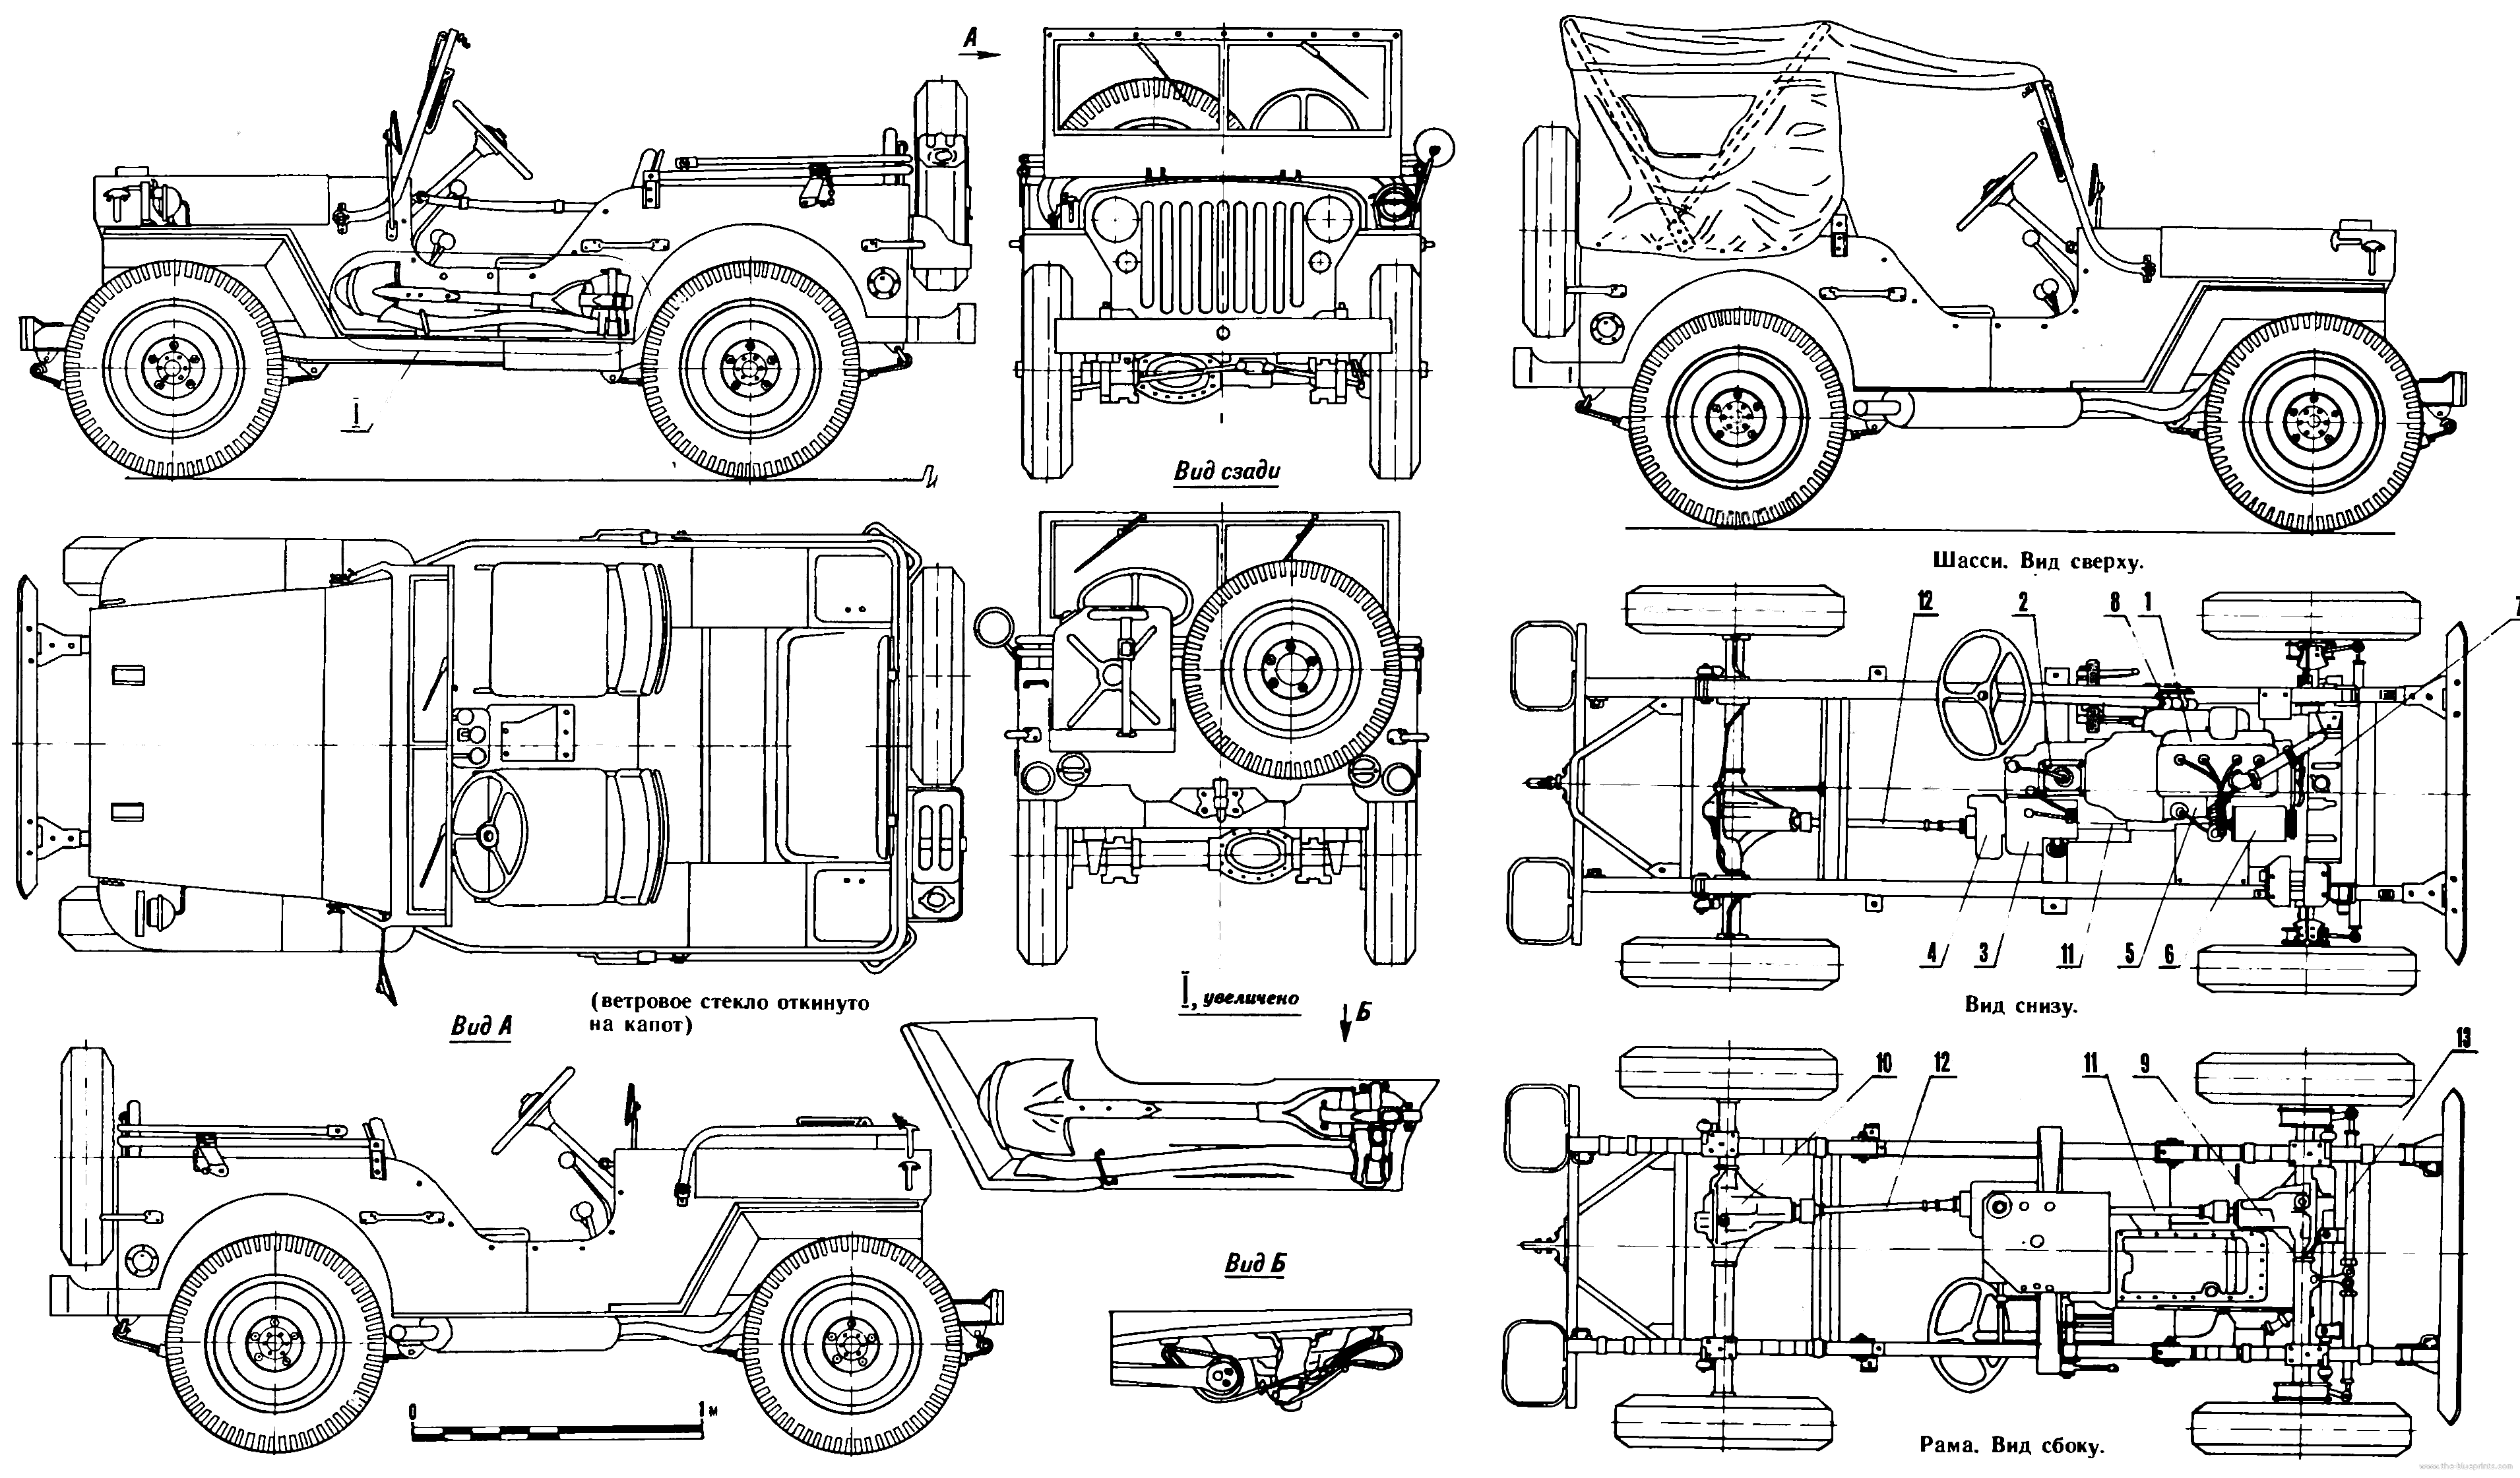 Willys Mb Blueprints Blueprint Pinterest Jeep Willys Mb Y Cars